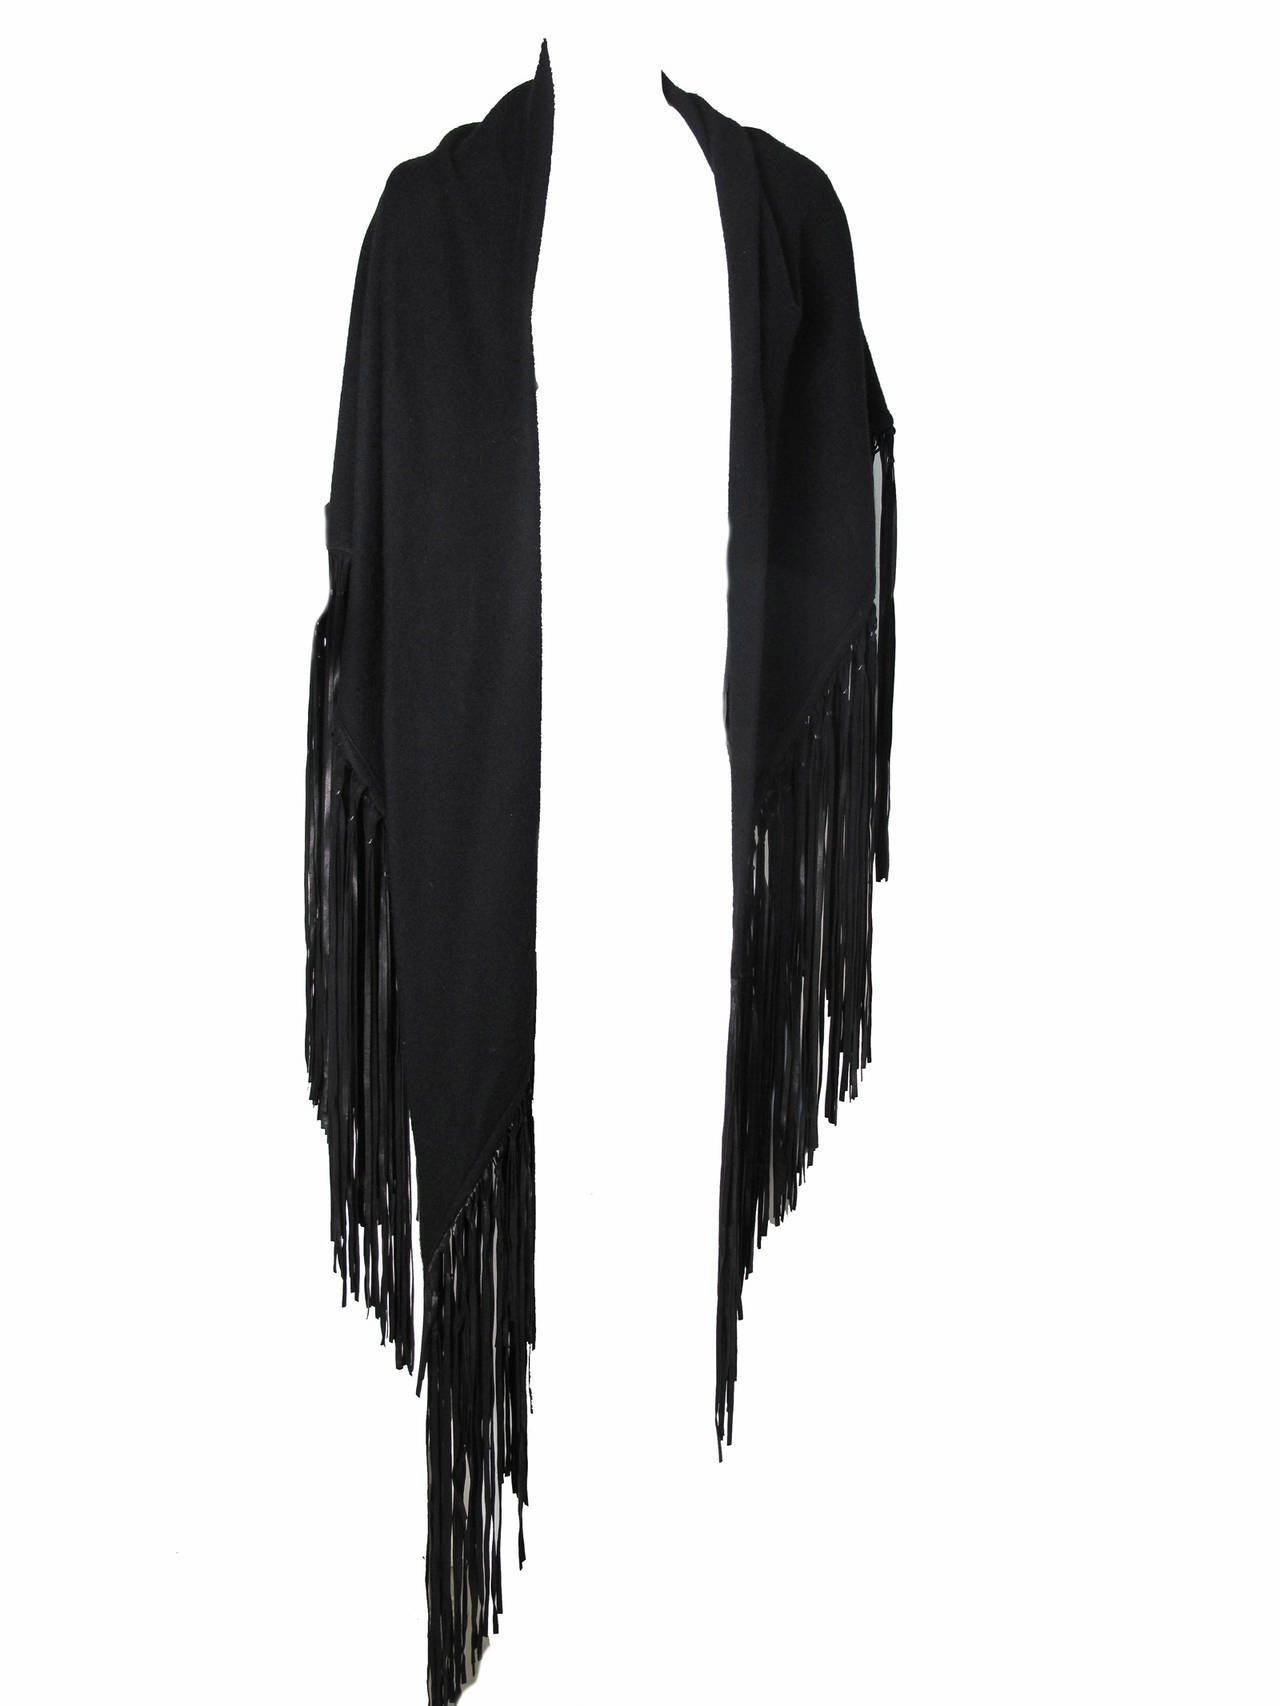 "1980s Hermes Black Wool Shawl with Leather Fringe.  Condition: Excellent. Triangle shape:  90"" L x 37 1/2"" H  ( before tassel ) 